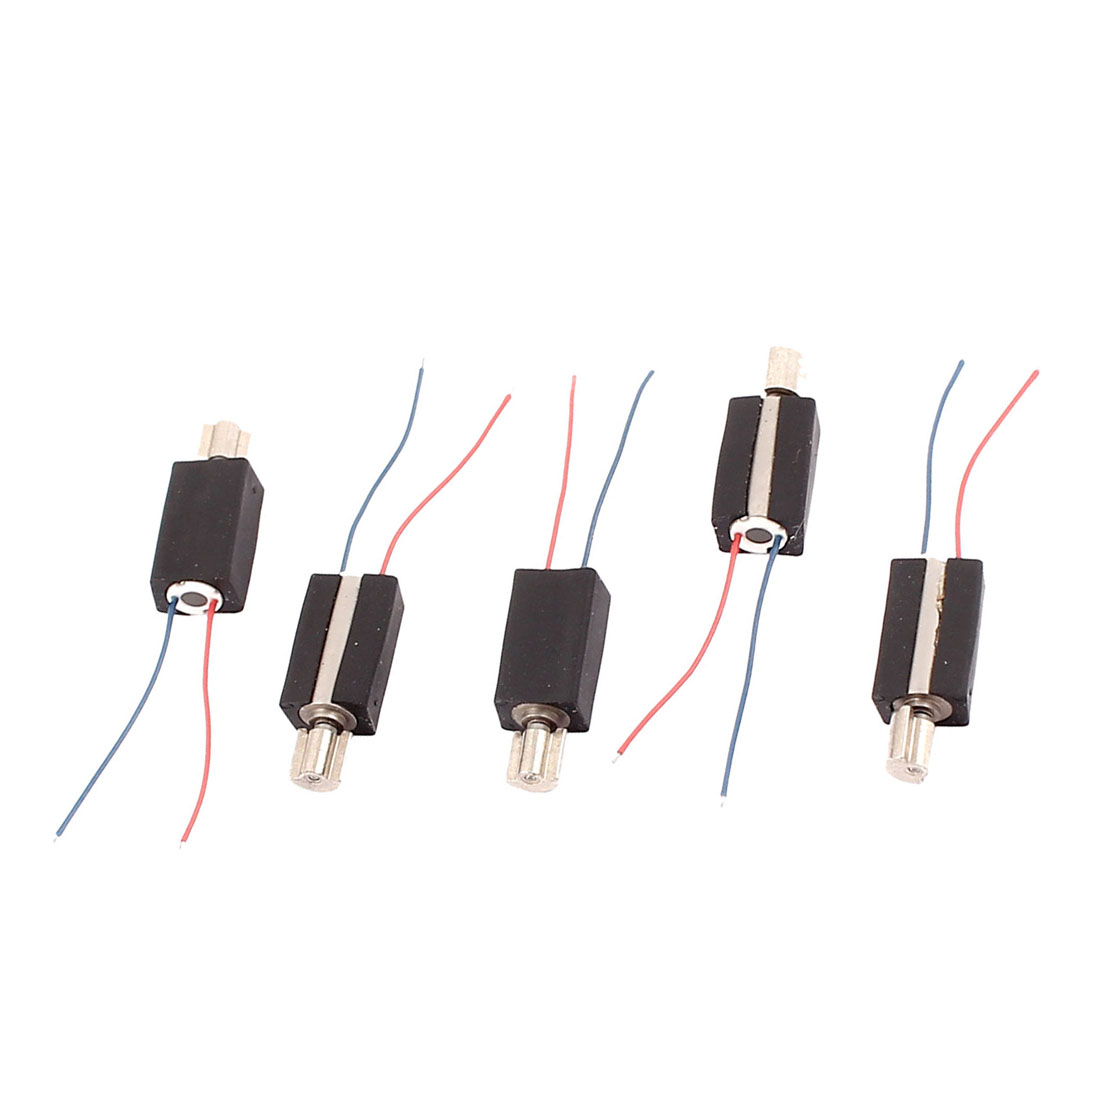 5 Pcs Electric Micro Vibration Coreless Motor 8000RPM DC 1.3-7V for Phone